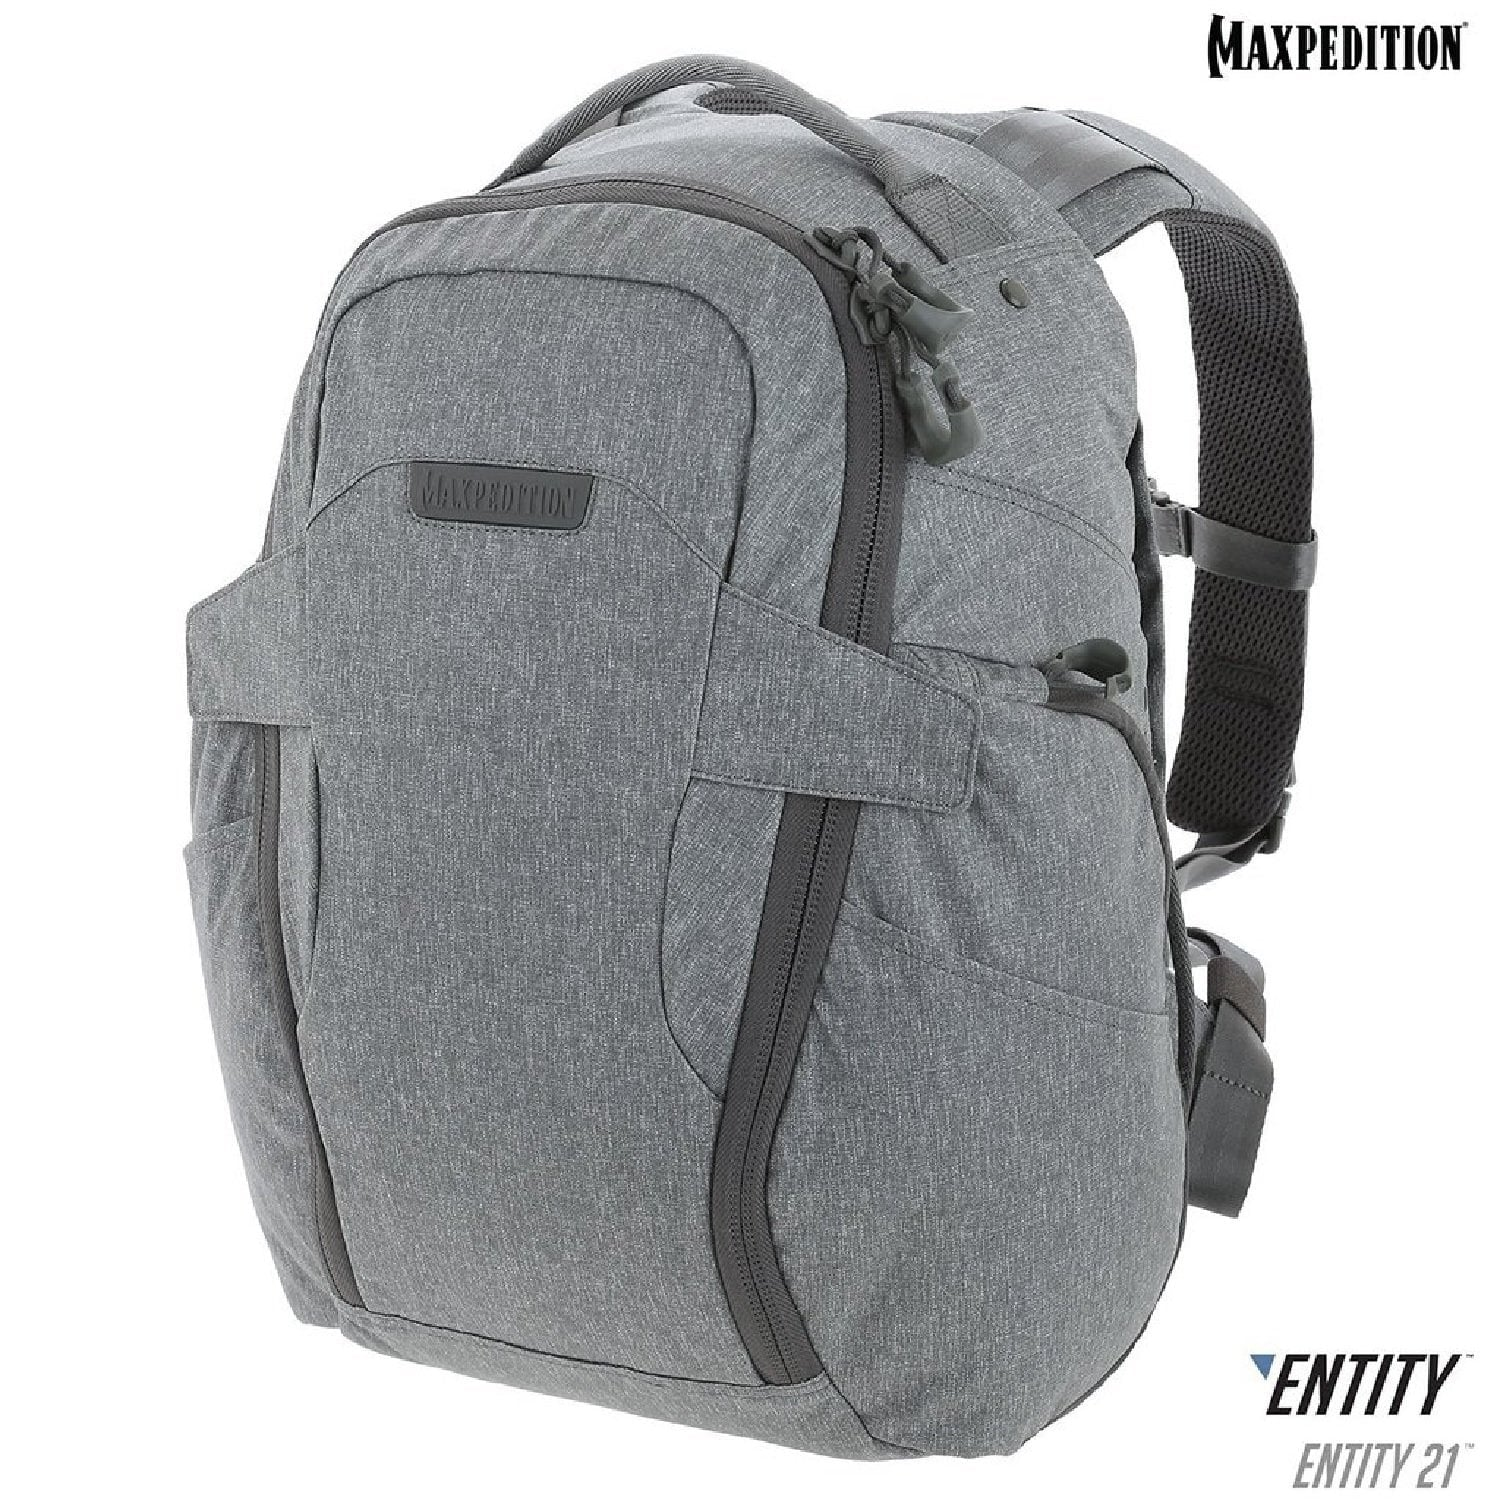 f677c8f3e0 Maxpedition ENTITY 21 CCW-Enabled EDC Backpack 21L Ash